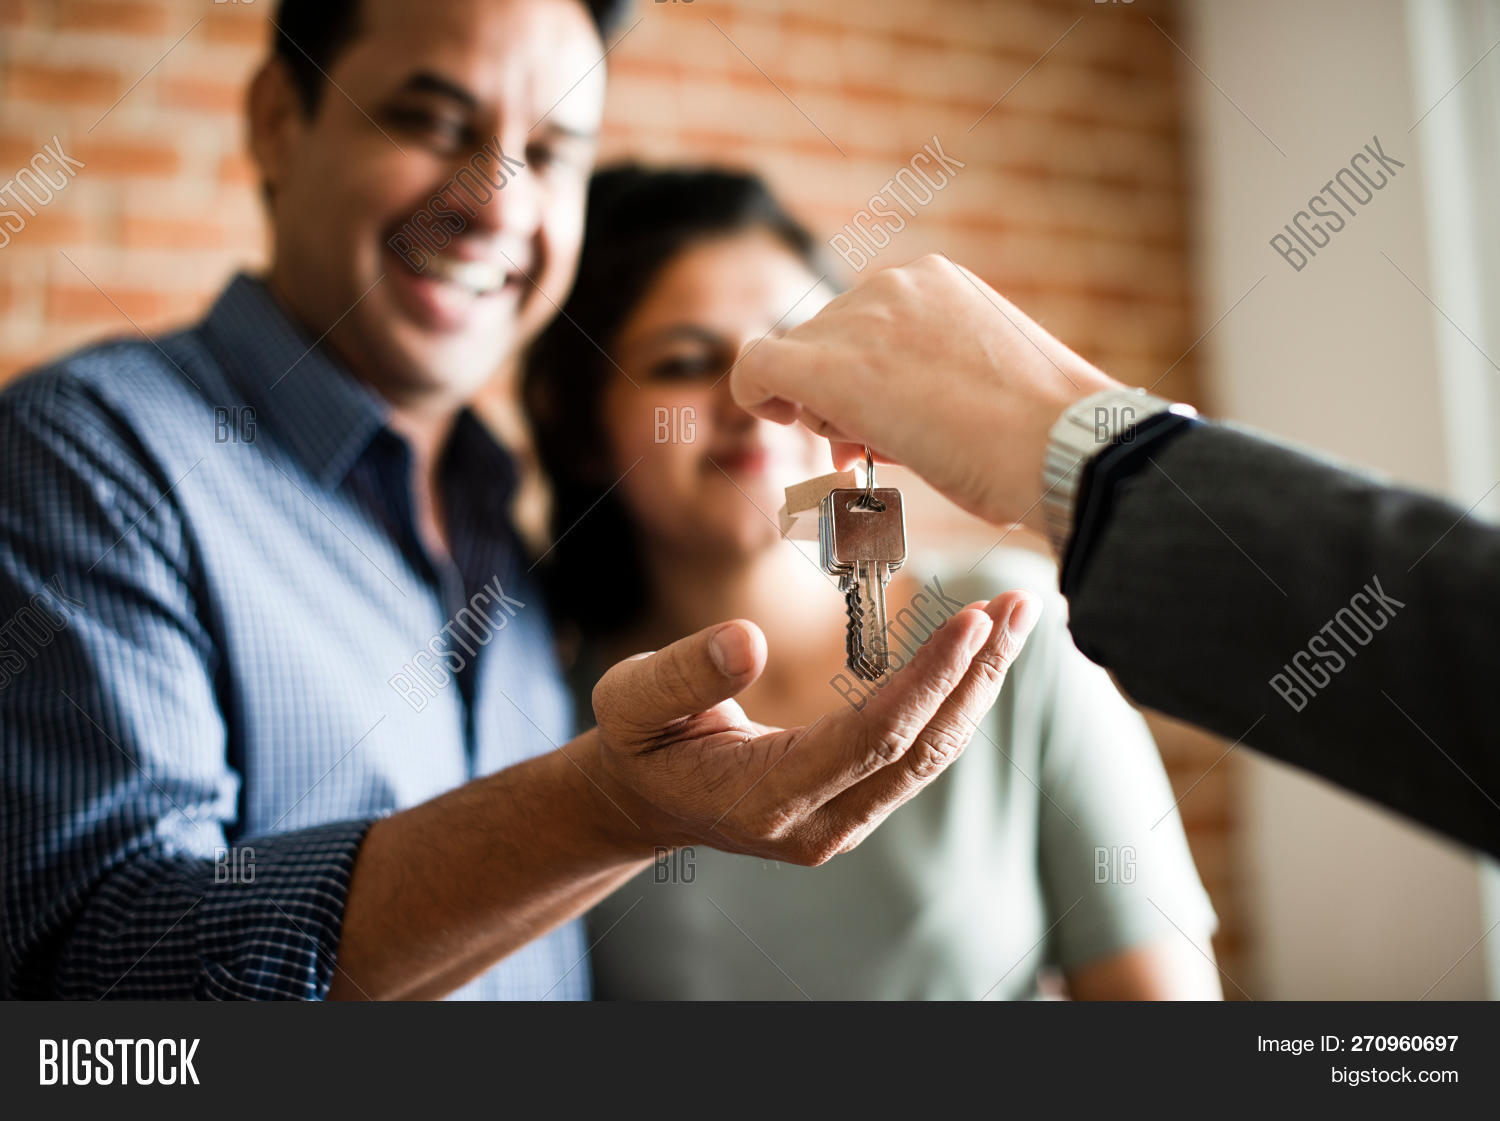 agent,agreement,apartment,asian,broker,business,buy,cheerful,clock,condominium,contract,couple,estate,field,finance,financial,giving,hands,happiness,happy,holding,home,house,house key,husband,indian,key,man,mortgage,mortgage broker,new home,pakistani,payment,people,property,real estate,realtor,refinance,residence,residential,sale,sell,seller,smile,wife,woman